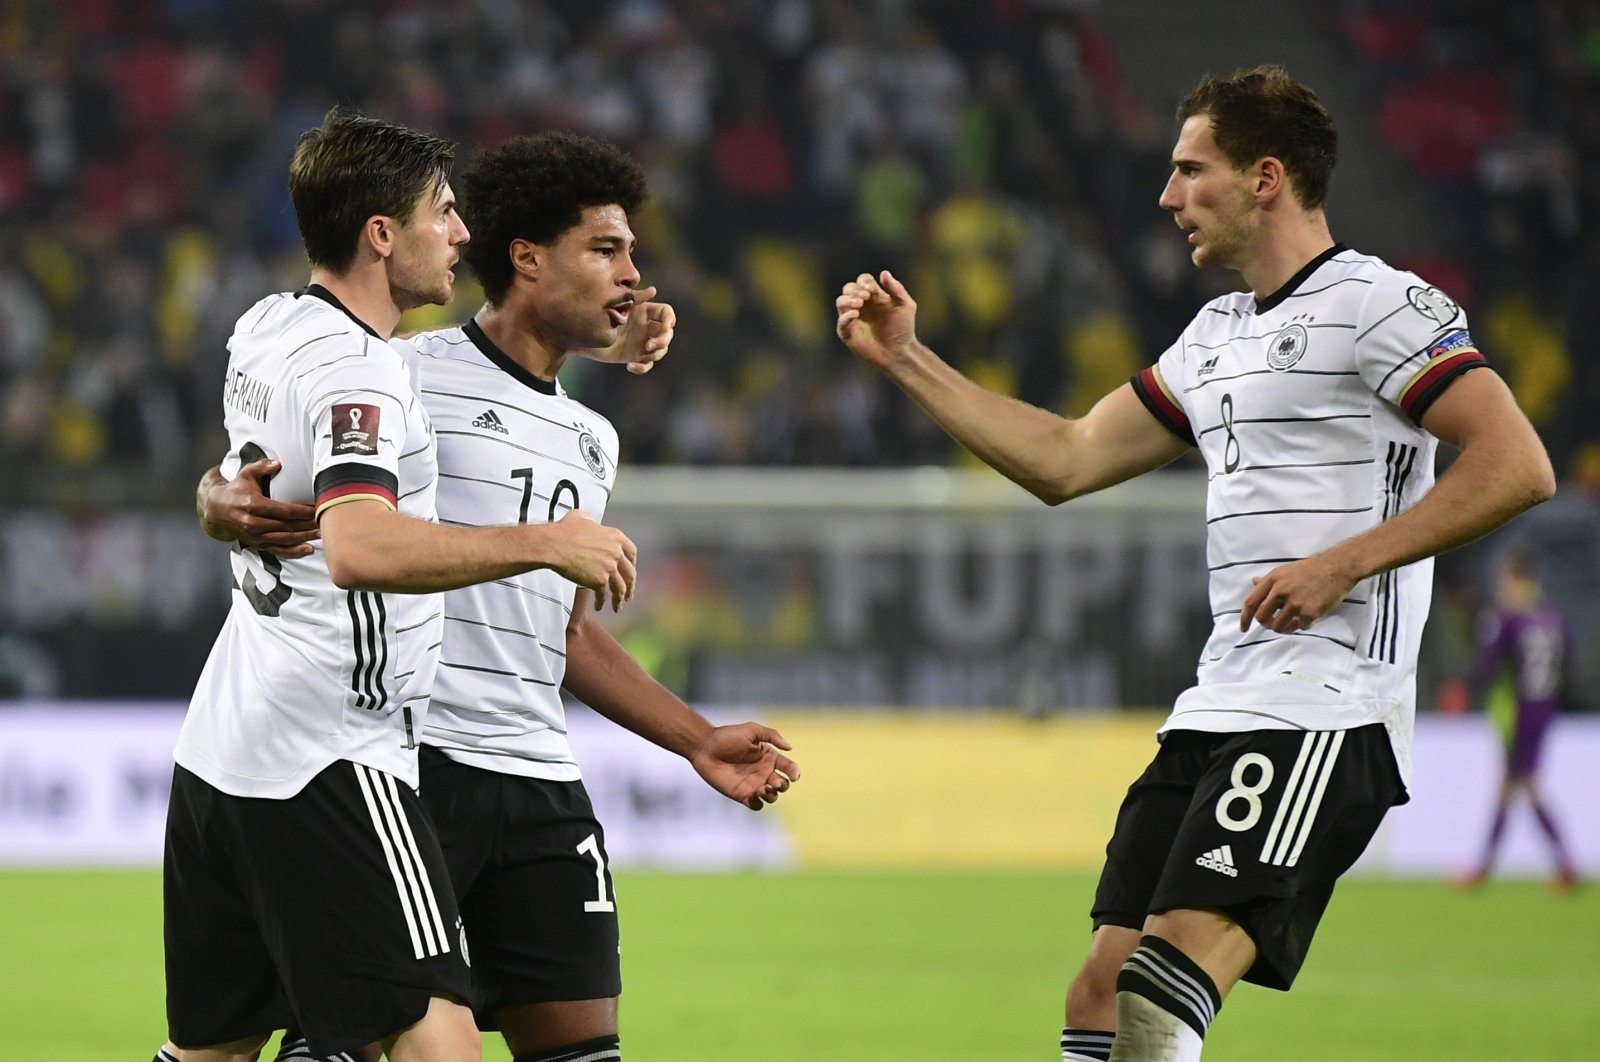 Germany's Serge Gnabry celebrates scoring against Romania in a UEFA World Cup qualifier at Hamburg, Germany, Oct. 8, 2021. (Reuters Photo)